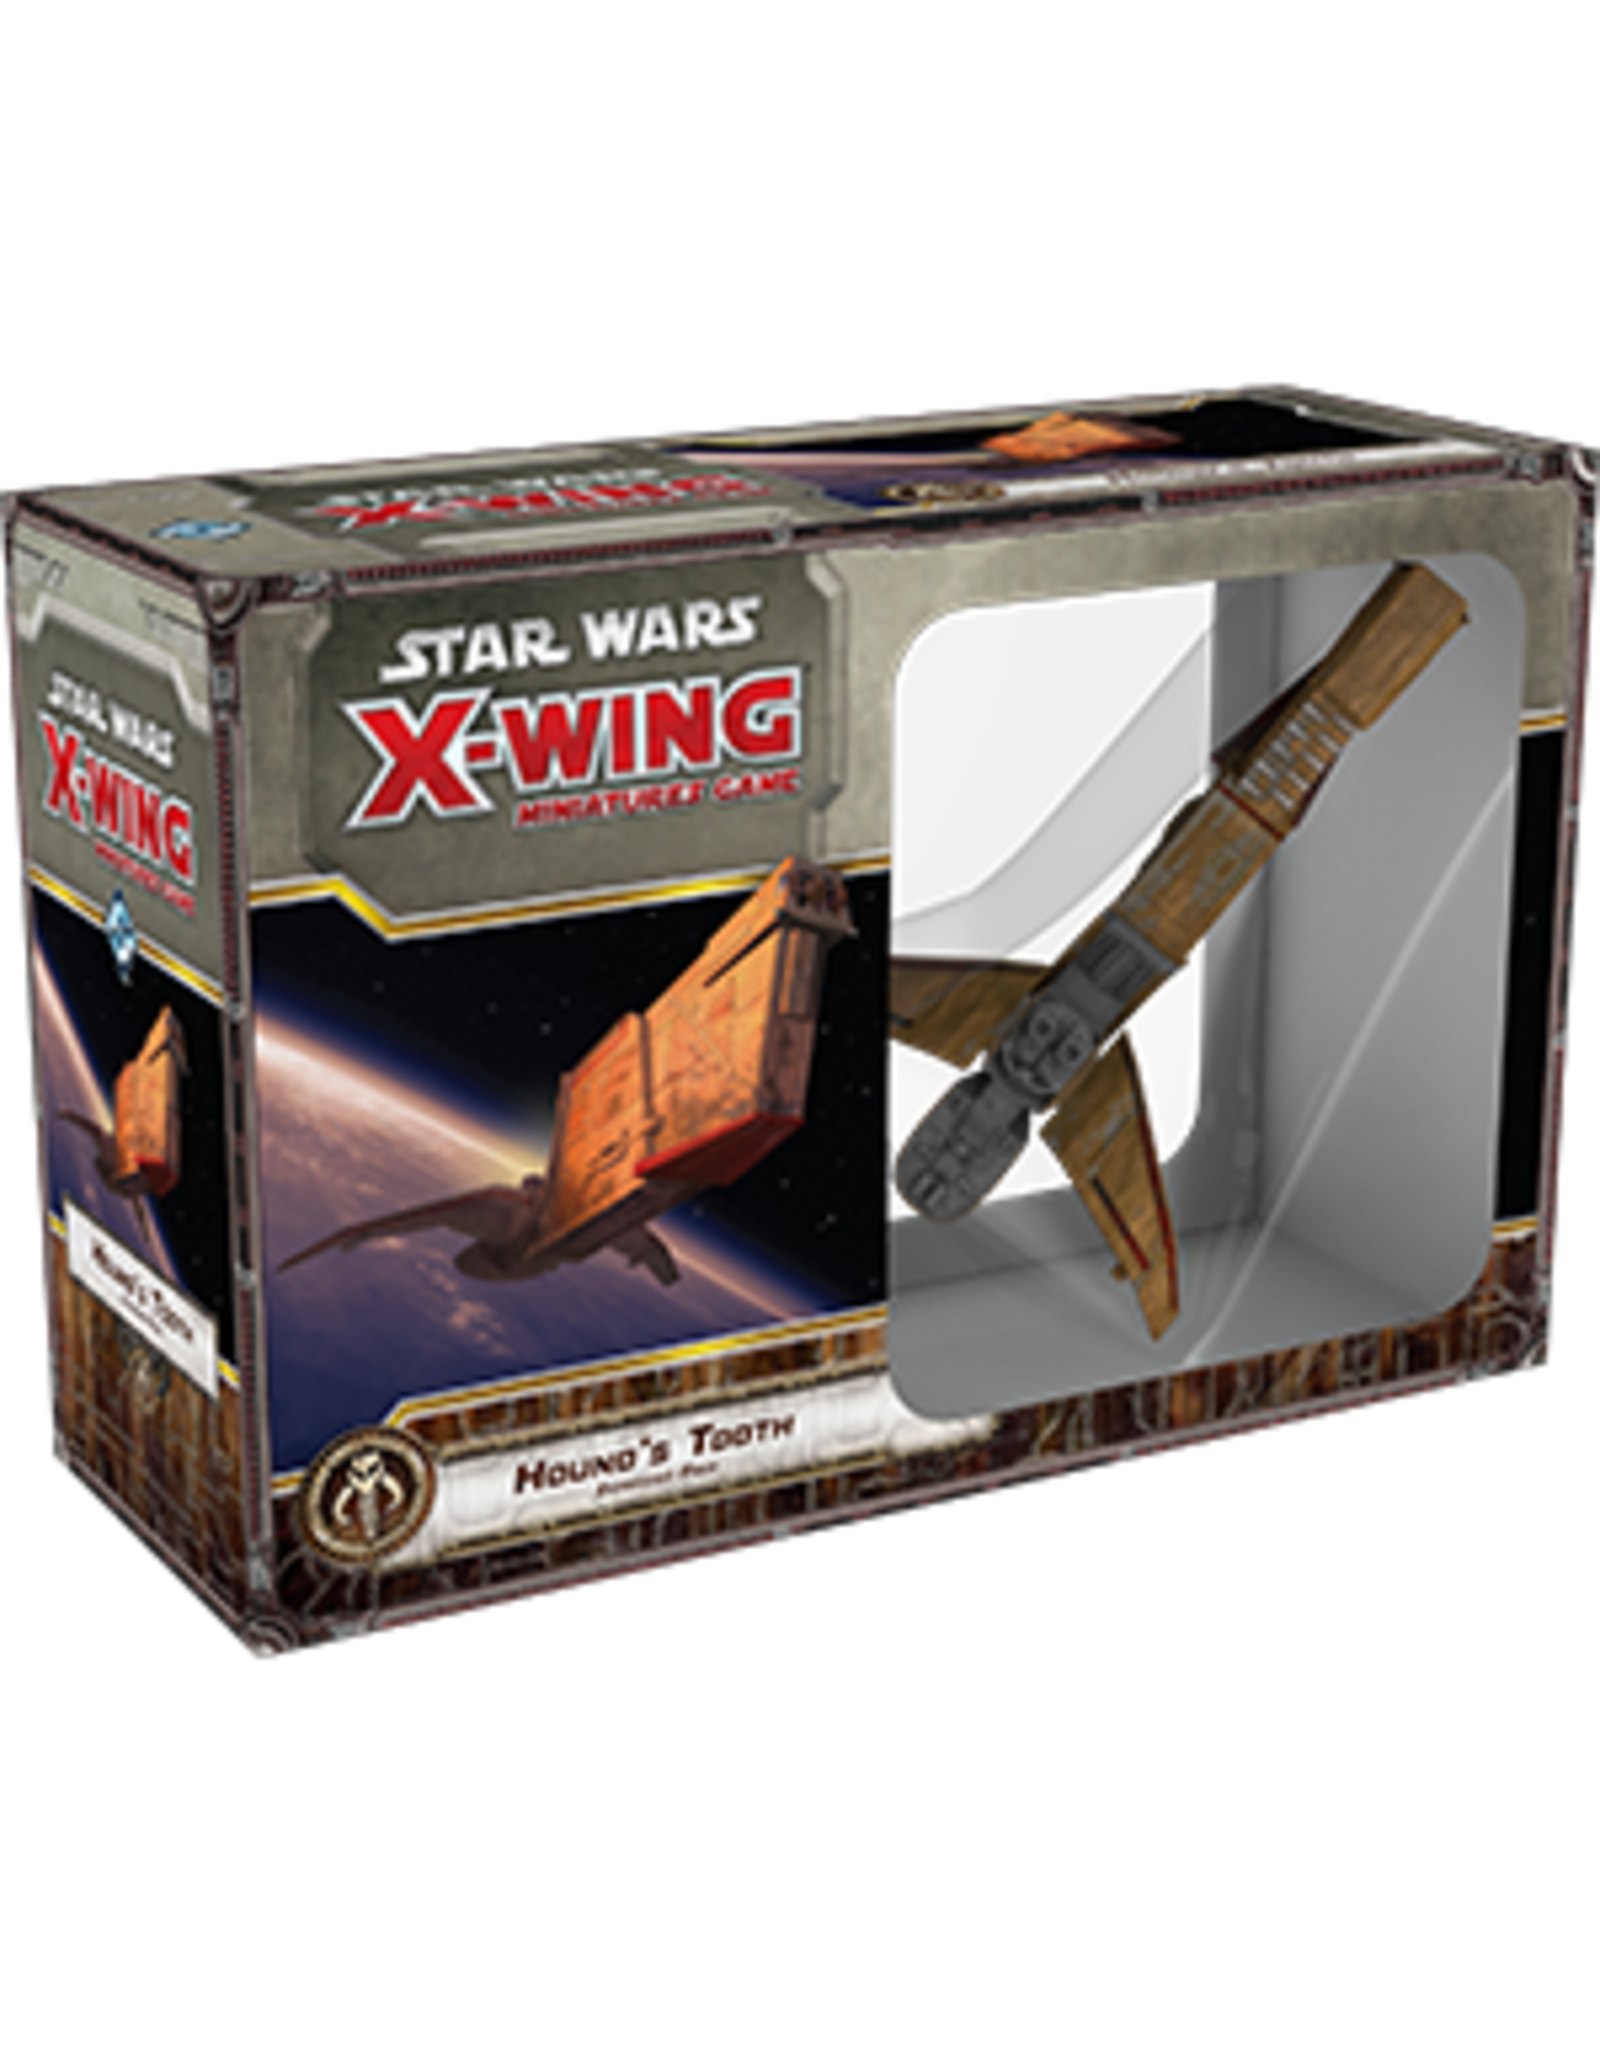 Fantasy Flight Games Star Wars X-Wing: Hound's Tooth Expansion Pack 1st ed